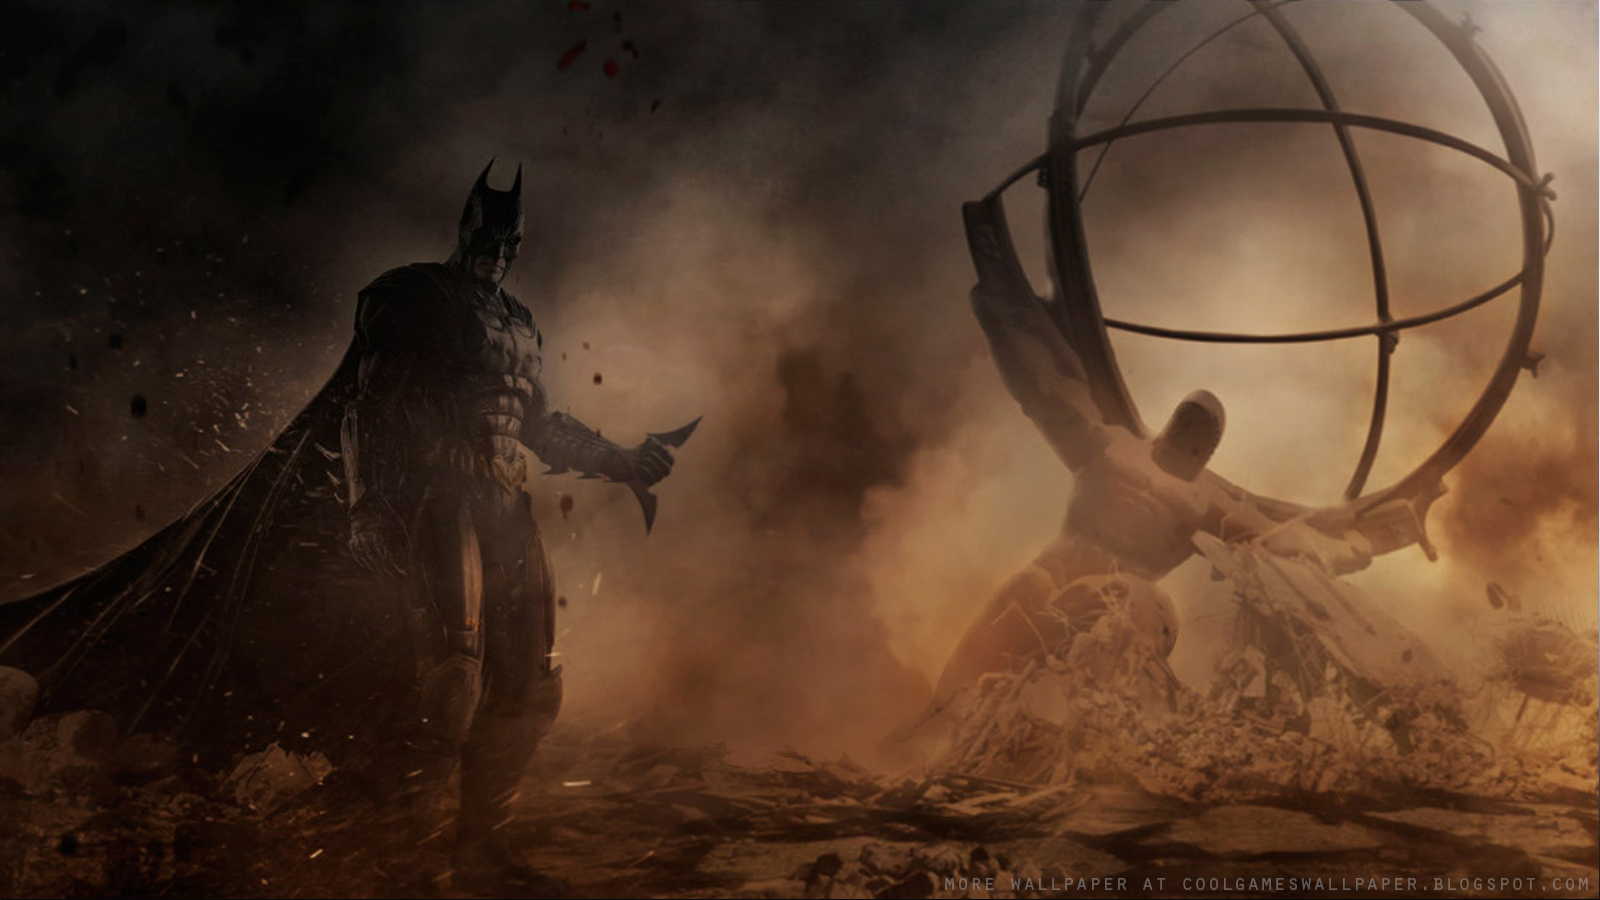 Injustice gods among us wallpapers cool games wallpaper injustice gods among us wallpaper batman voltagebd Gallery